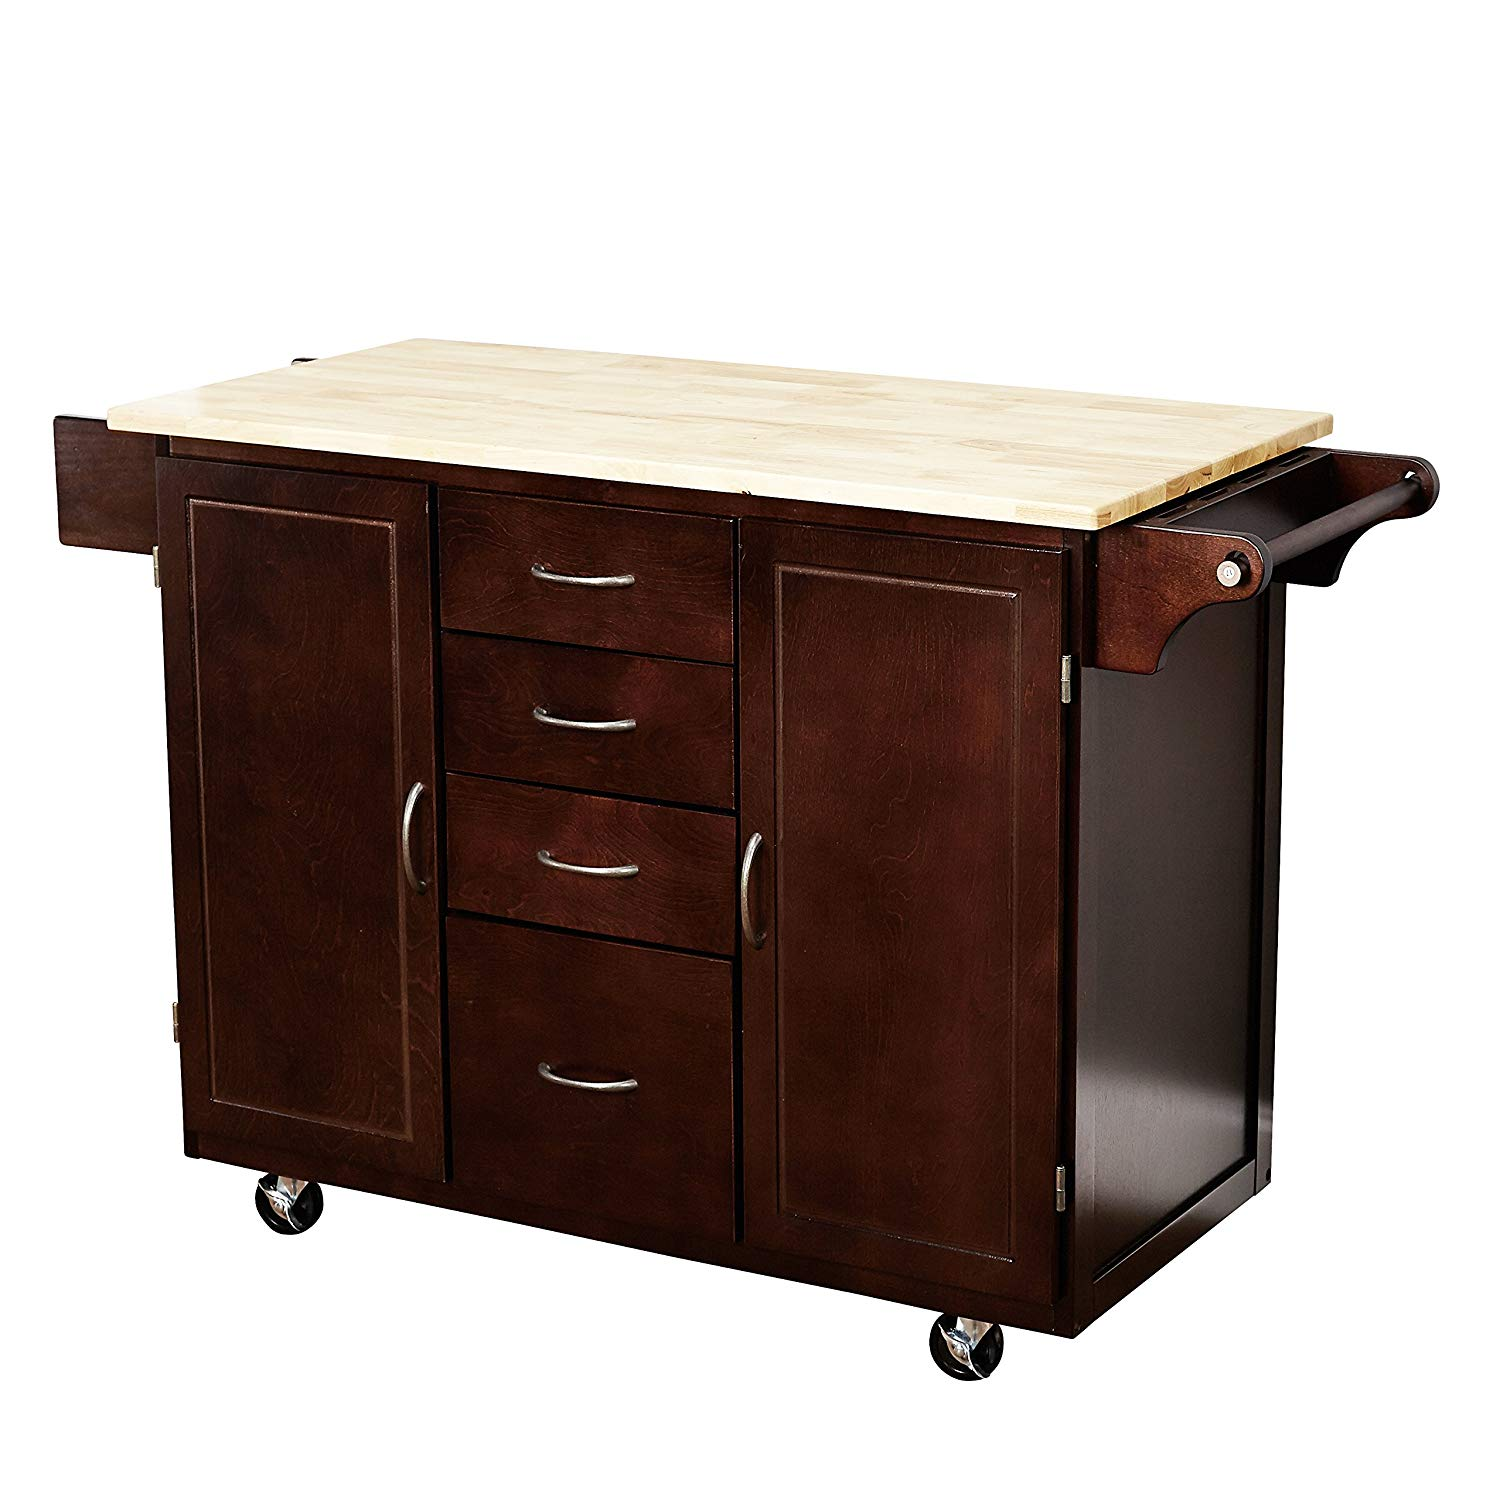 Target Marketing Systems Two-Toned Country Cottage Rolling Kitchen Cart with 4 Drawers, 2 Cabinets, 1 Towel Rack, 1 Spice Rack, and an Adjustable Shelf, Espresso/Natural